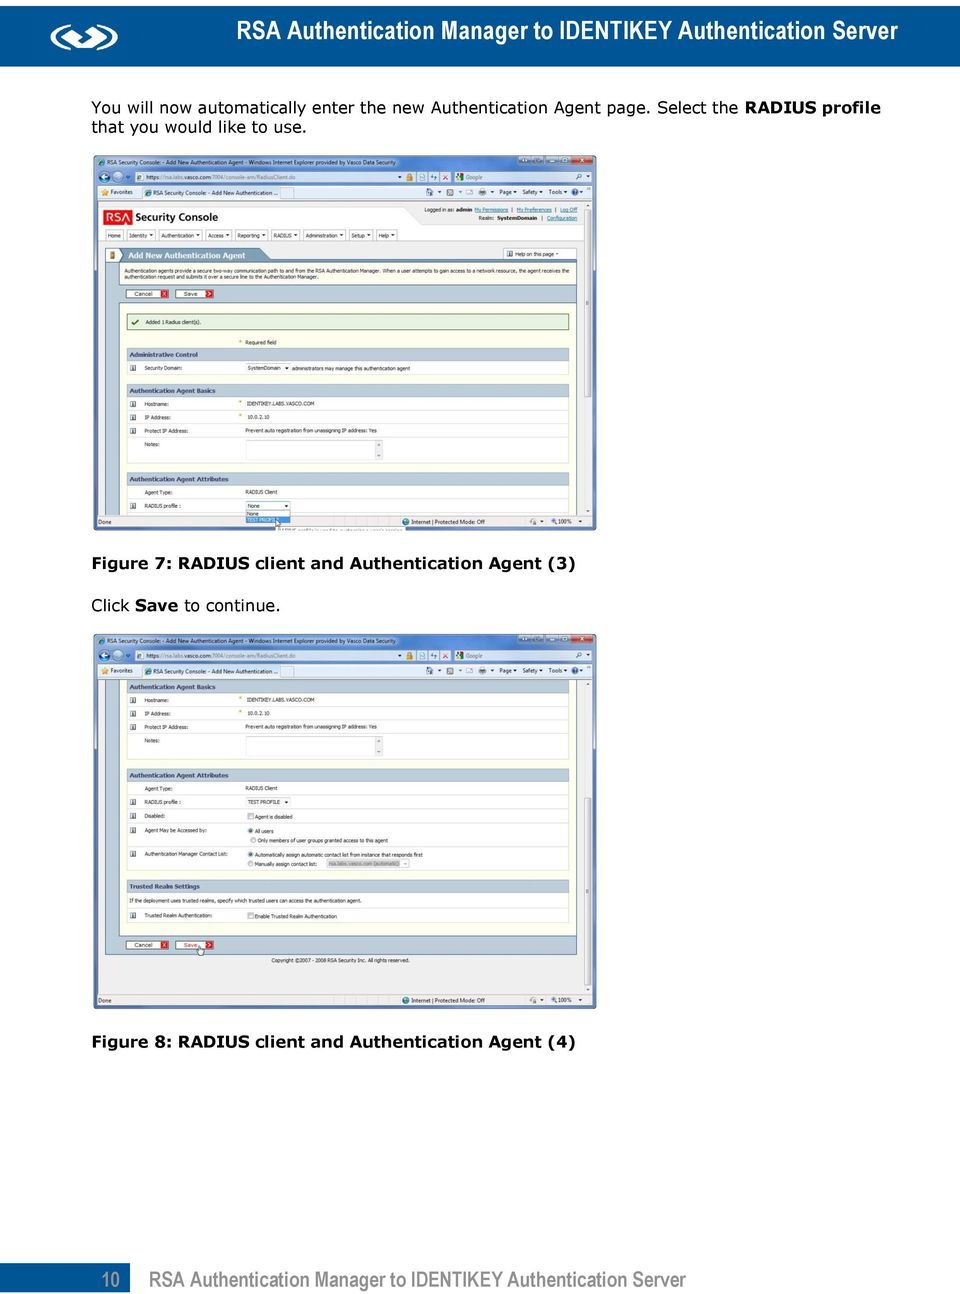 Figure 7: RADIUS client and Authentication Agent (3) Click Save to continue.